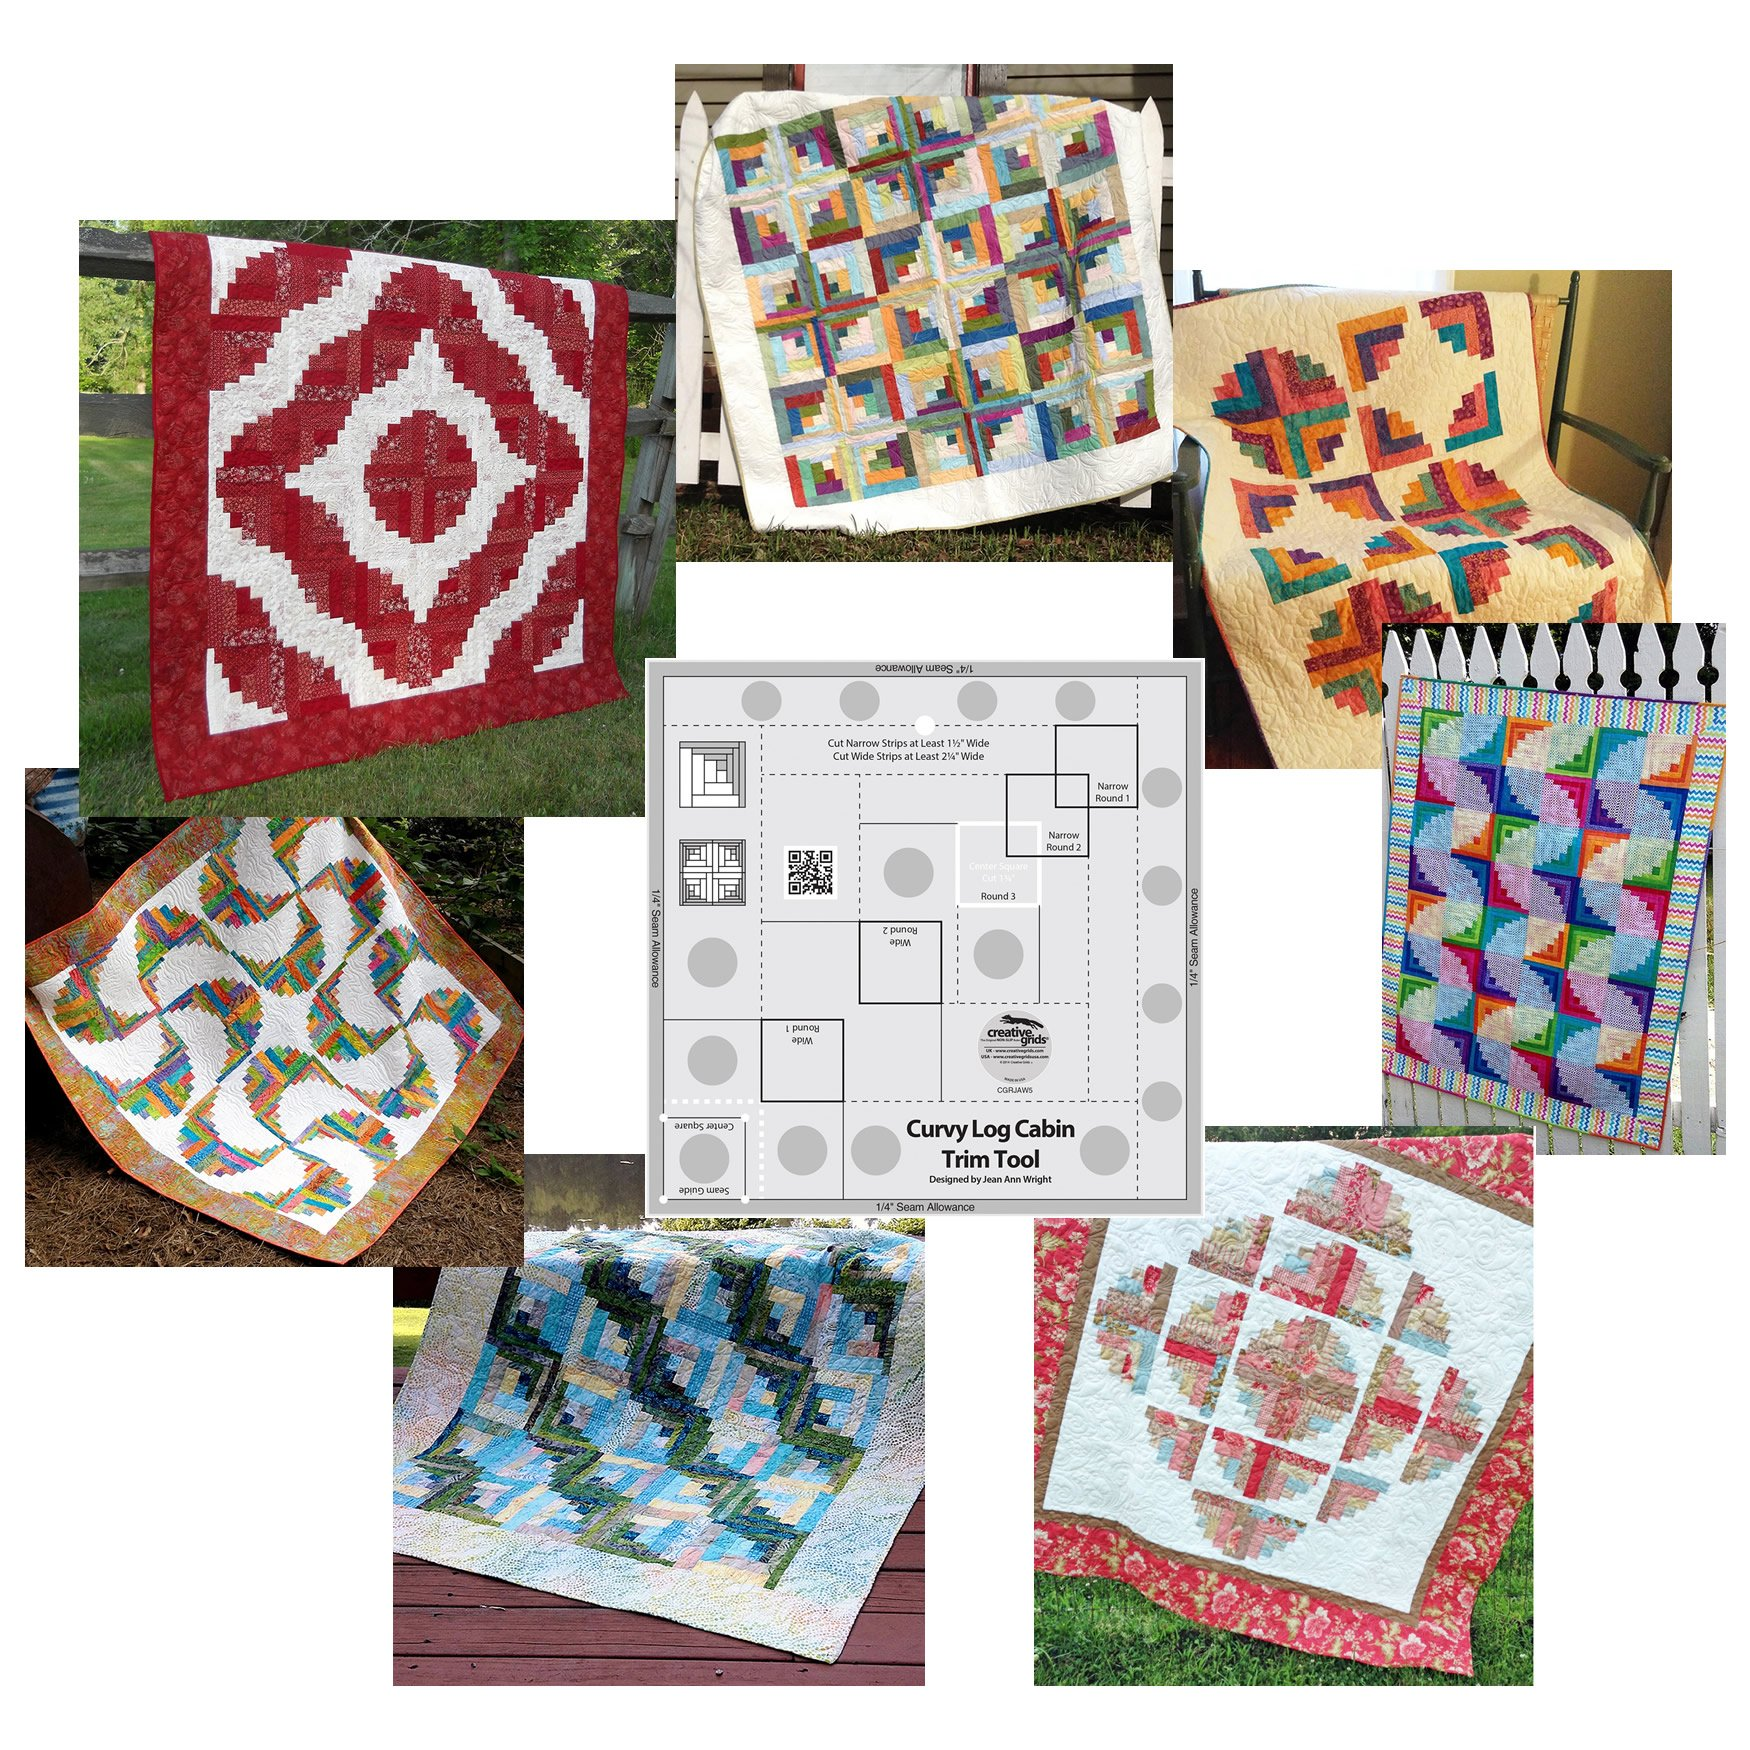 Bundle of Creative Grids Curvy Log Cabin Trim Tool 8in Finished Blocks and Seven (7) Cut Loose Press Curvy Log Cabin Quilt Patterns by Creative Grids USA, and Cut Loose Press